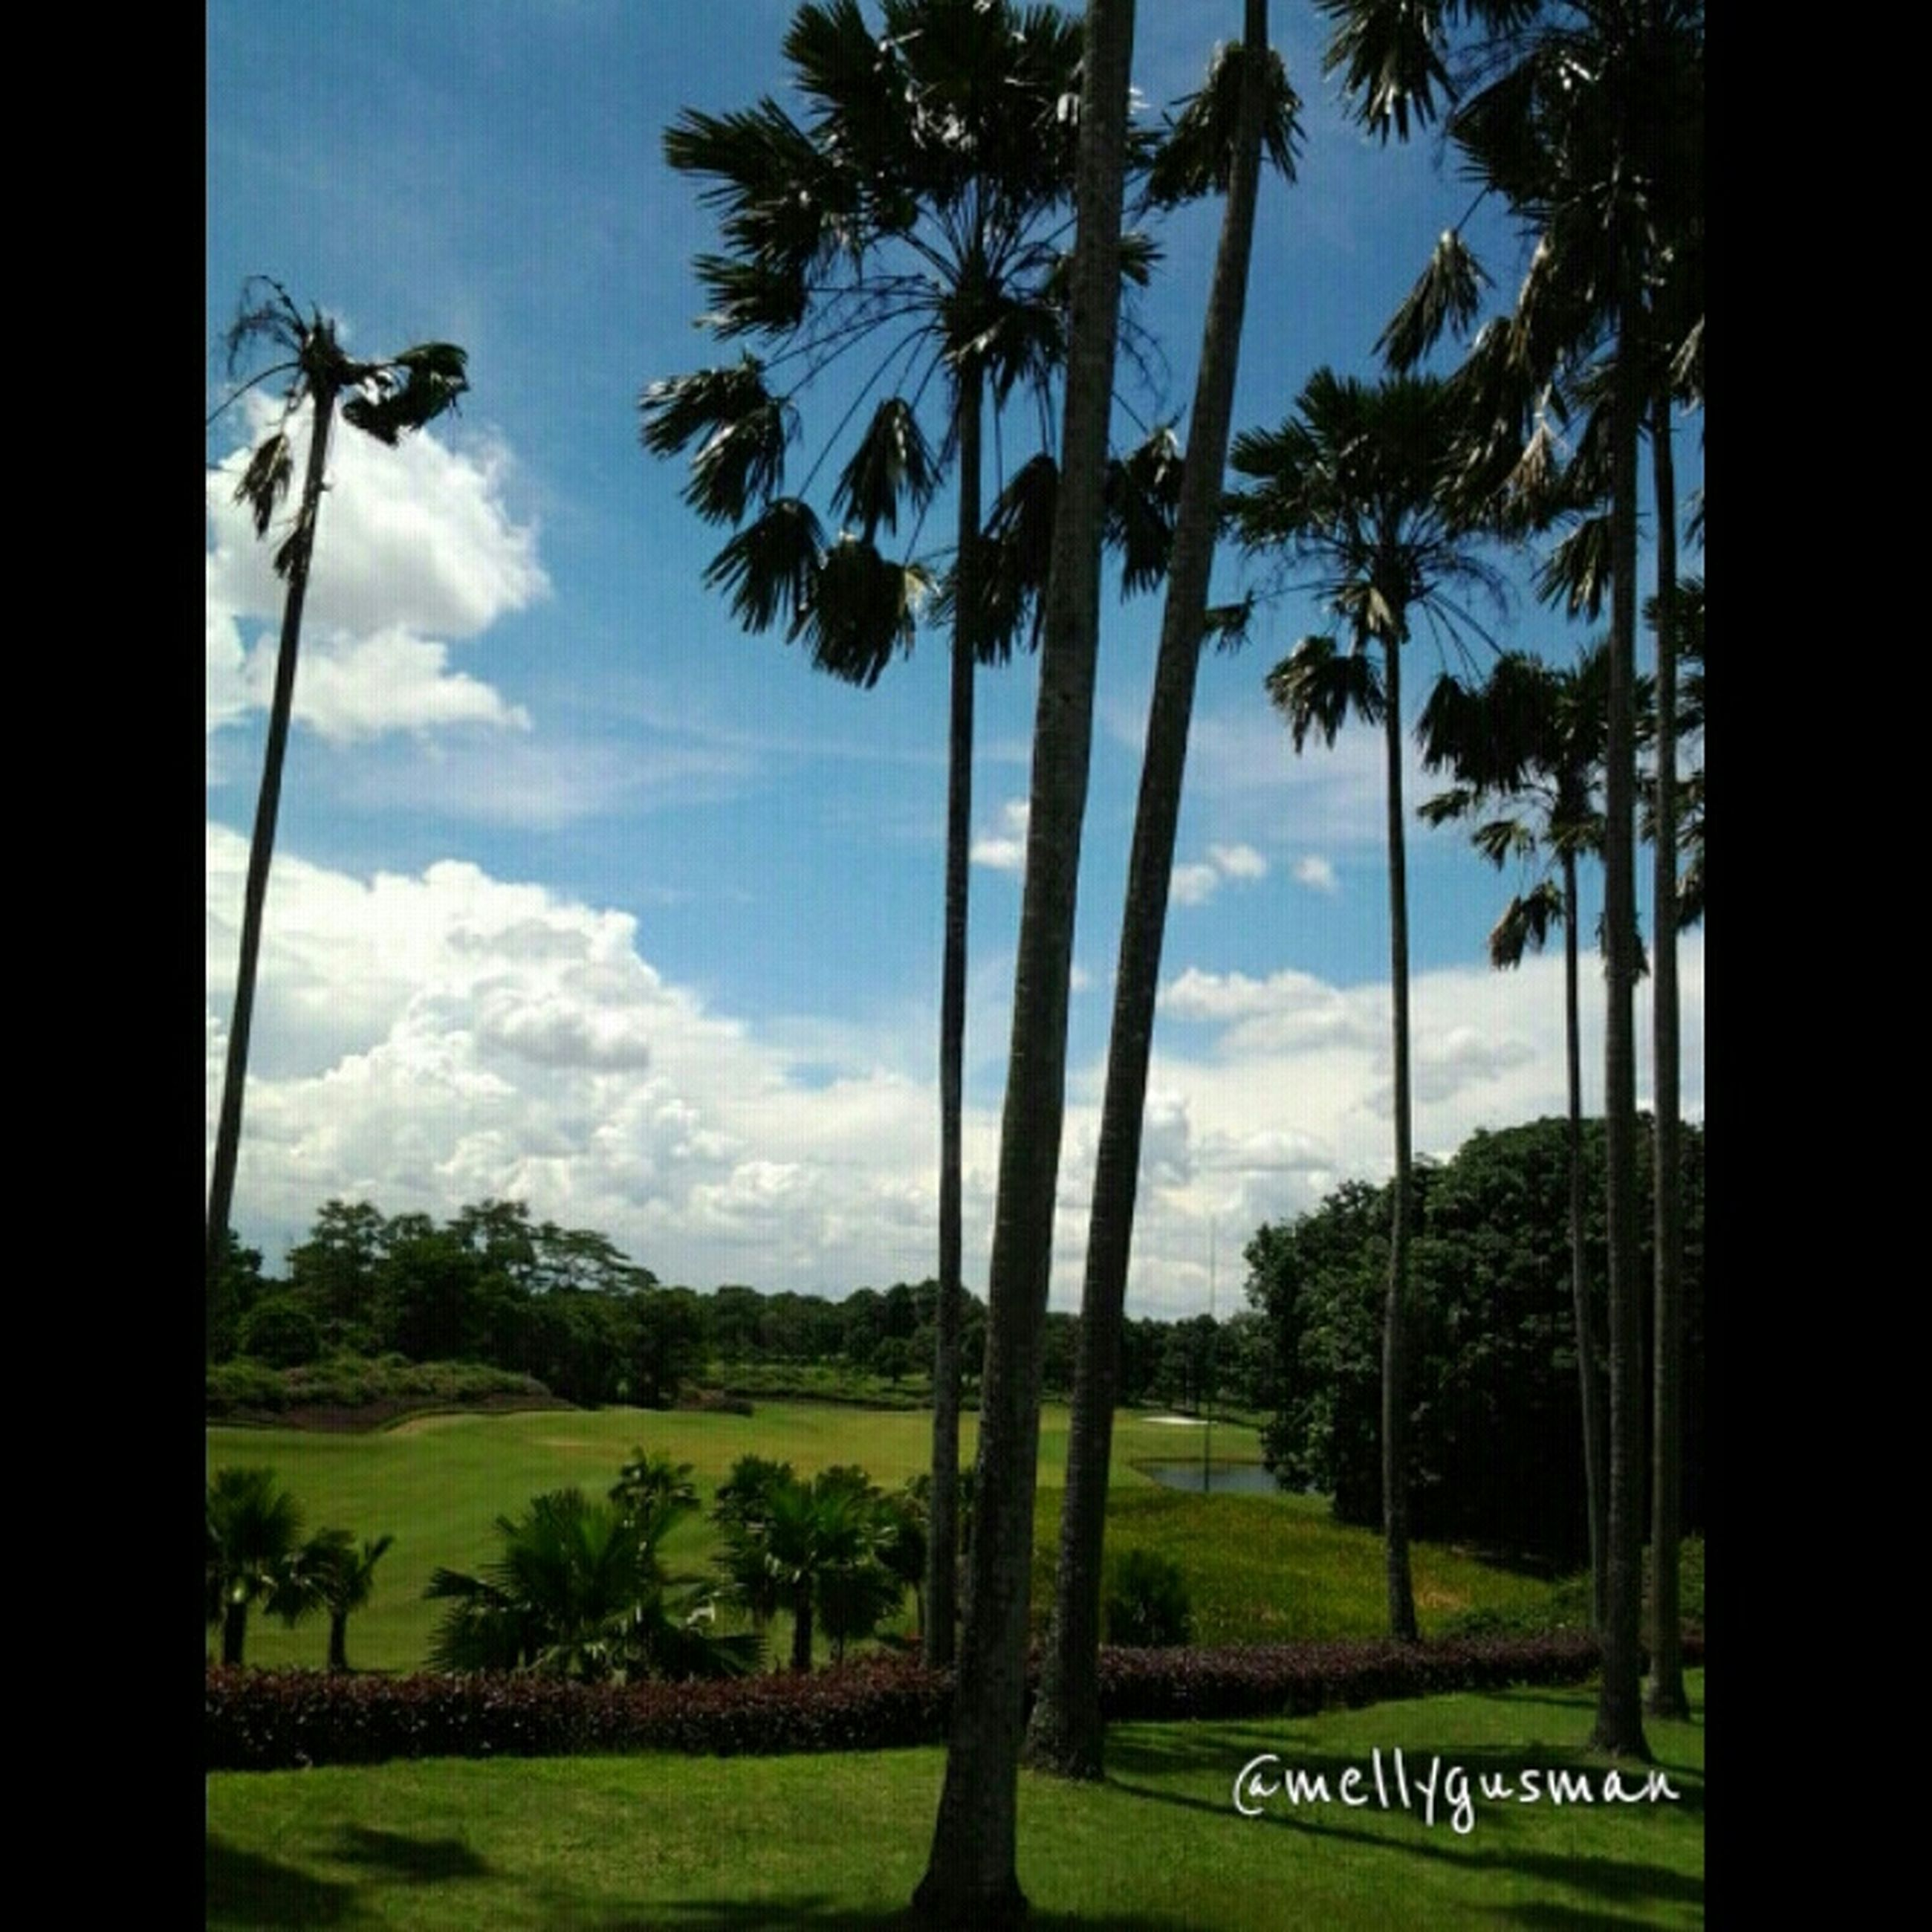 tree, sky, grass, tree trunk, growth, field, tranquility, green color, landscape, cloud - sky, nature, cloud, tranquil scene, palm tree, park - man made space, beauty in nature, scenics, day, transfer print, sunlight